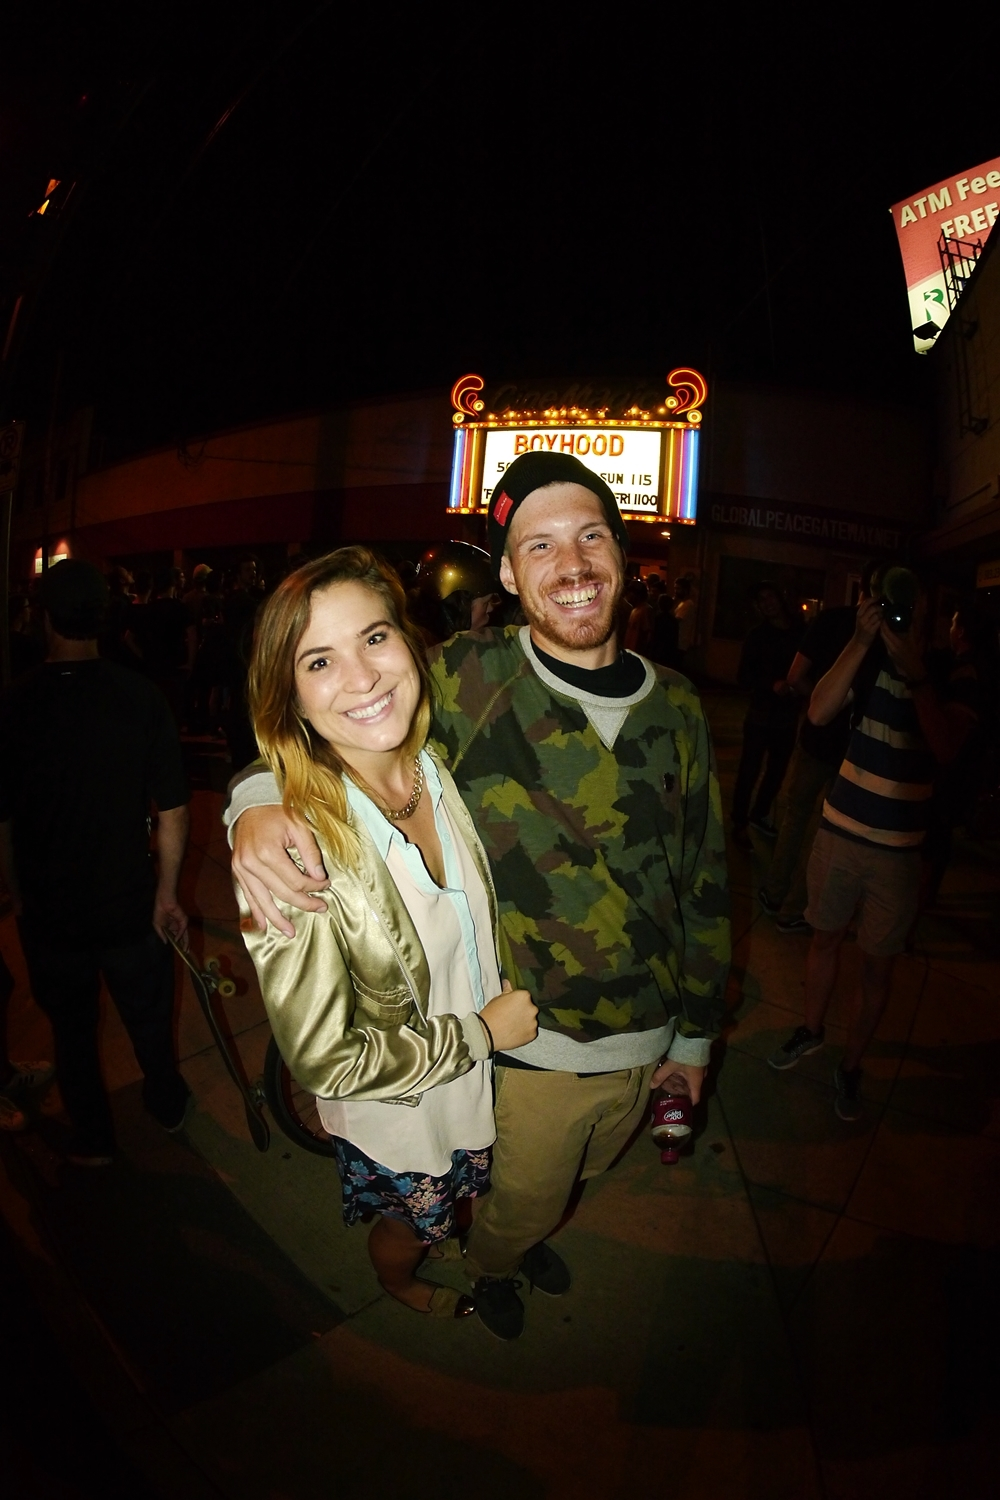 (FWIL40) LA schoolyard HD film doctor Cory Williams and the lovely lady..JPG